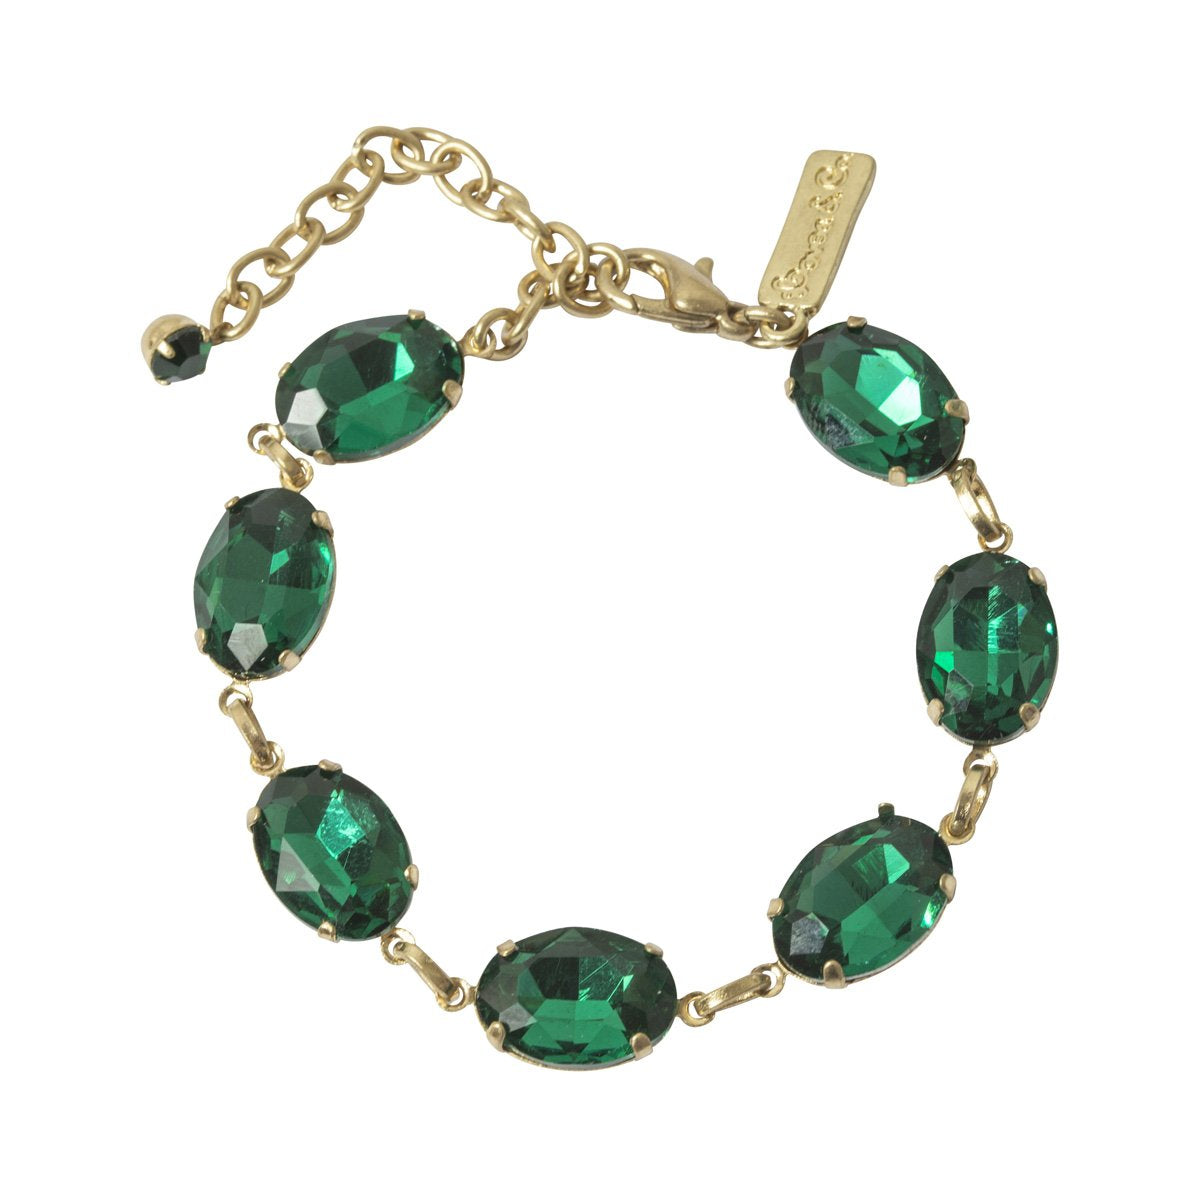 Lovett Bracelet - Oval Stone with Clasp - Emerald or Montana Blue